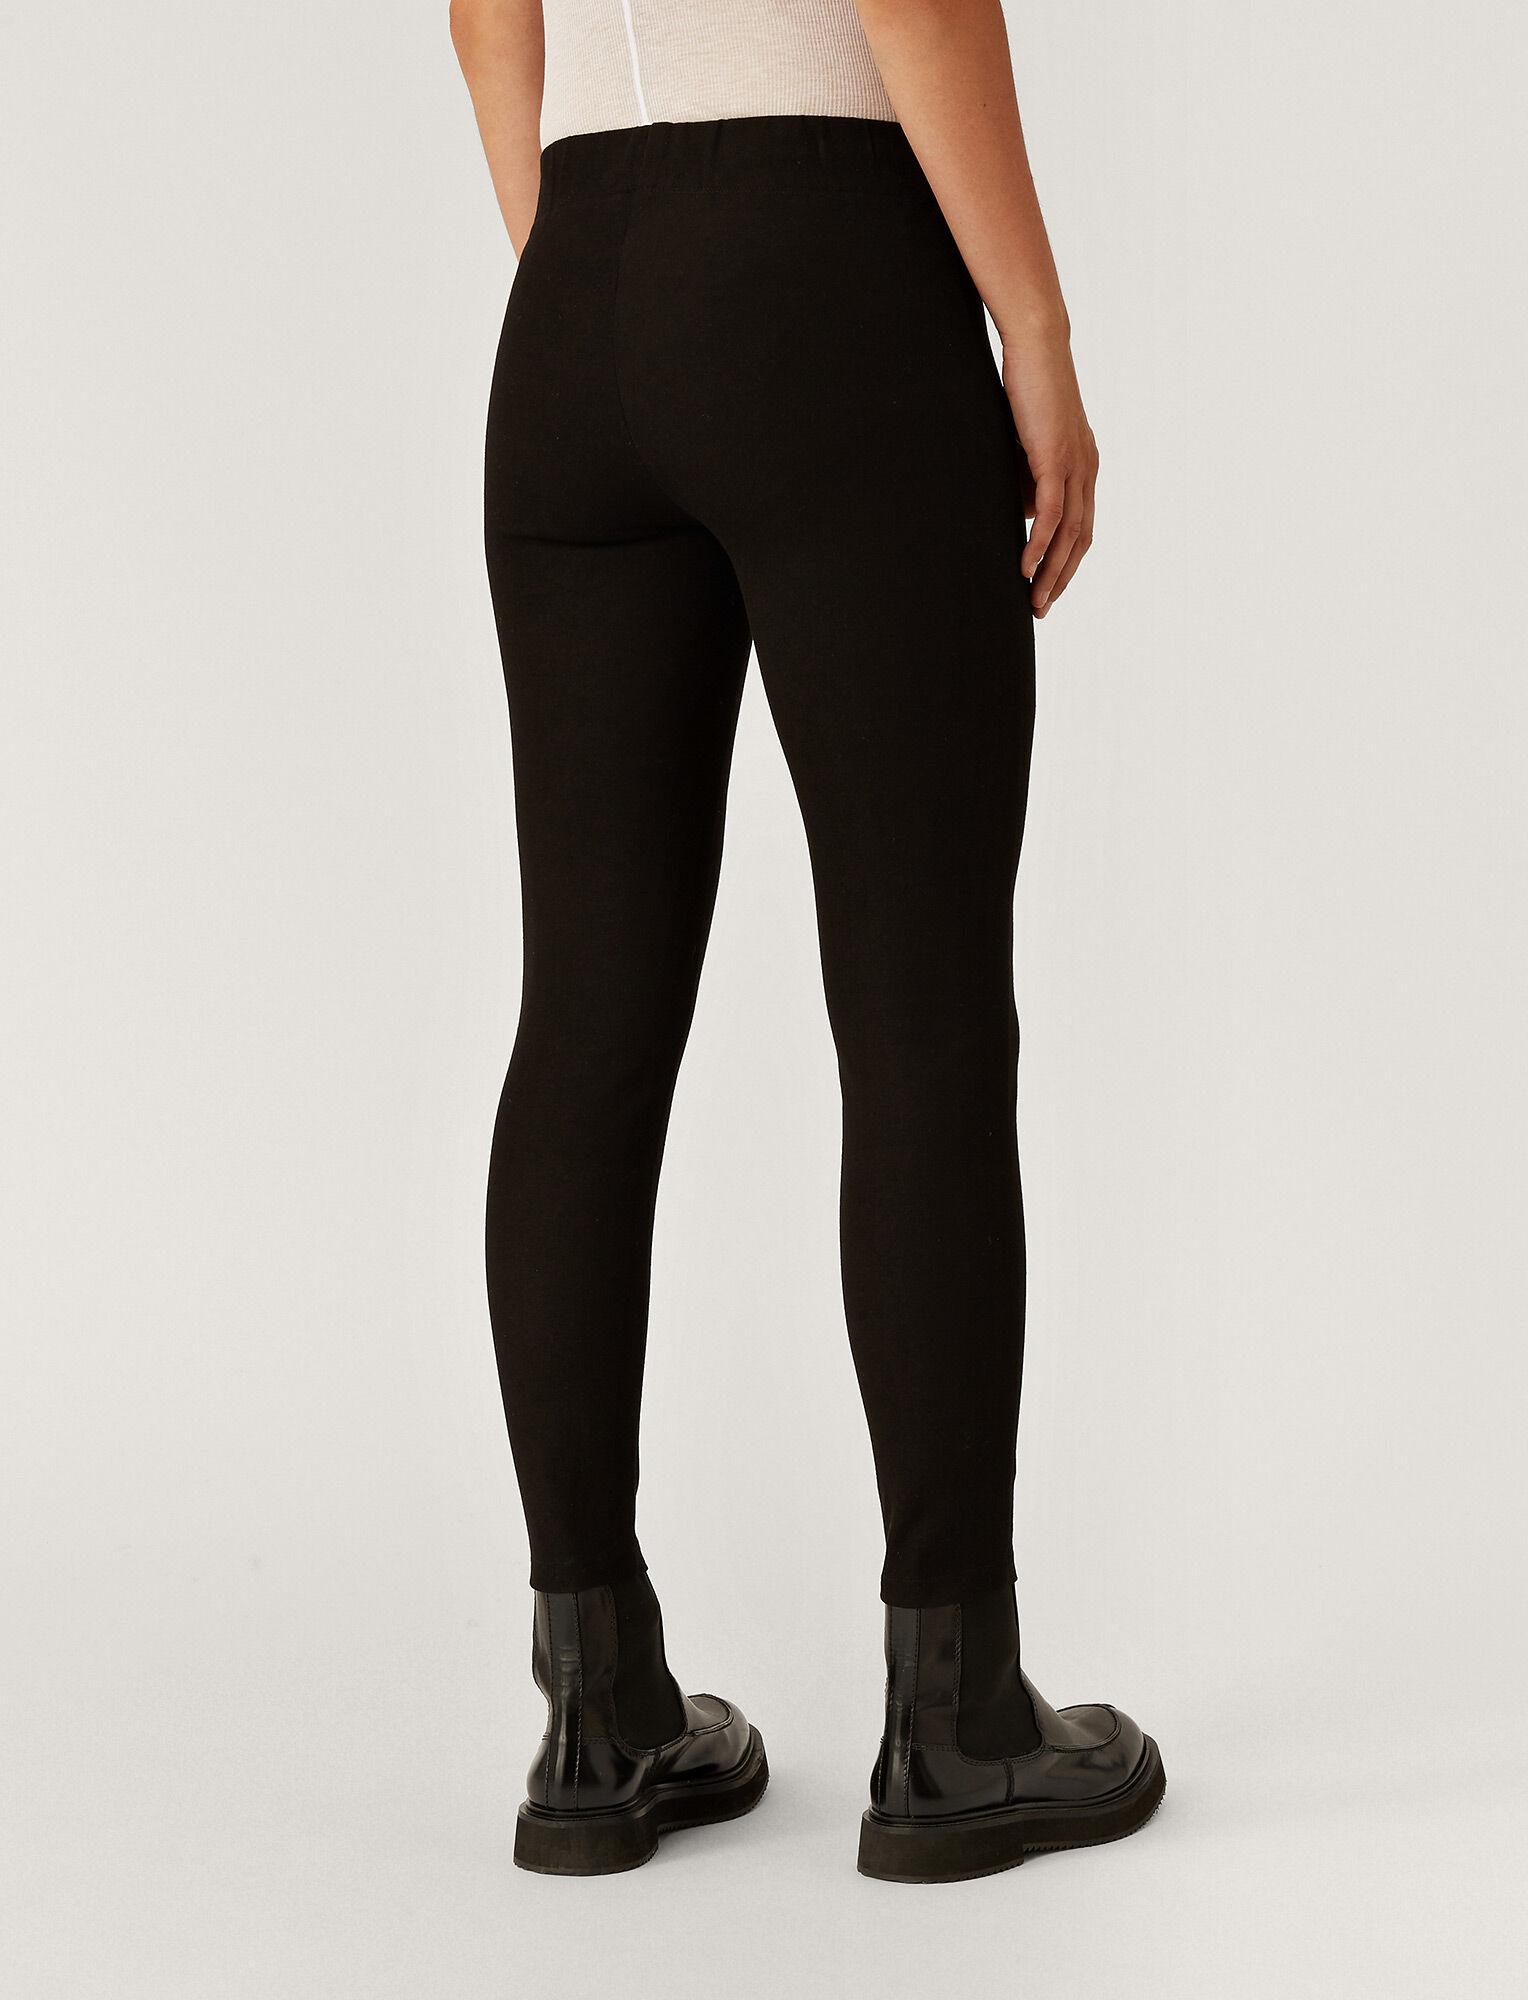 Joseph, Pantalon Nitro en gabardine stretch, in BLACK